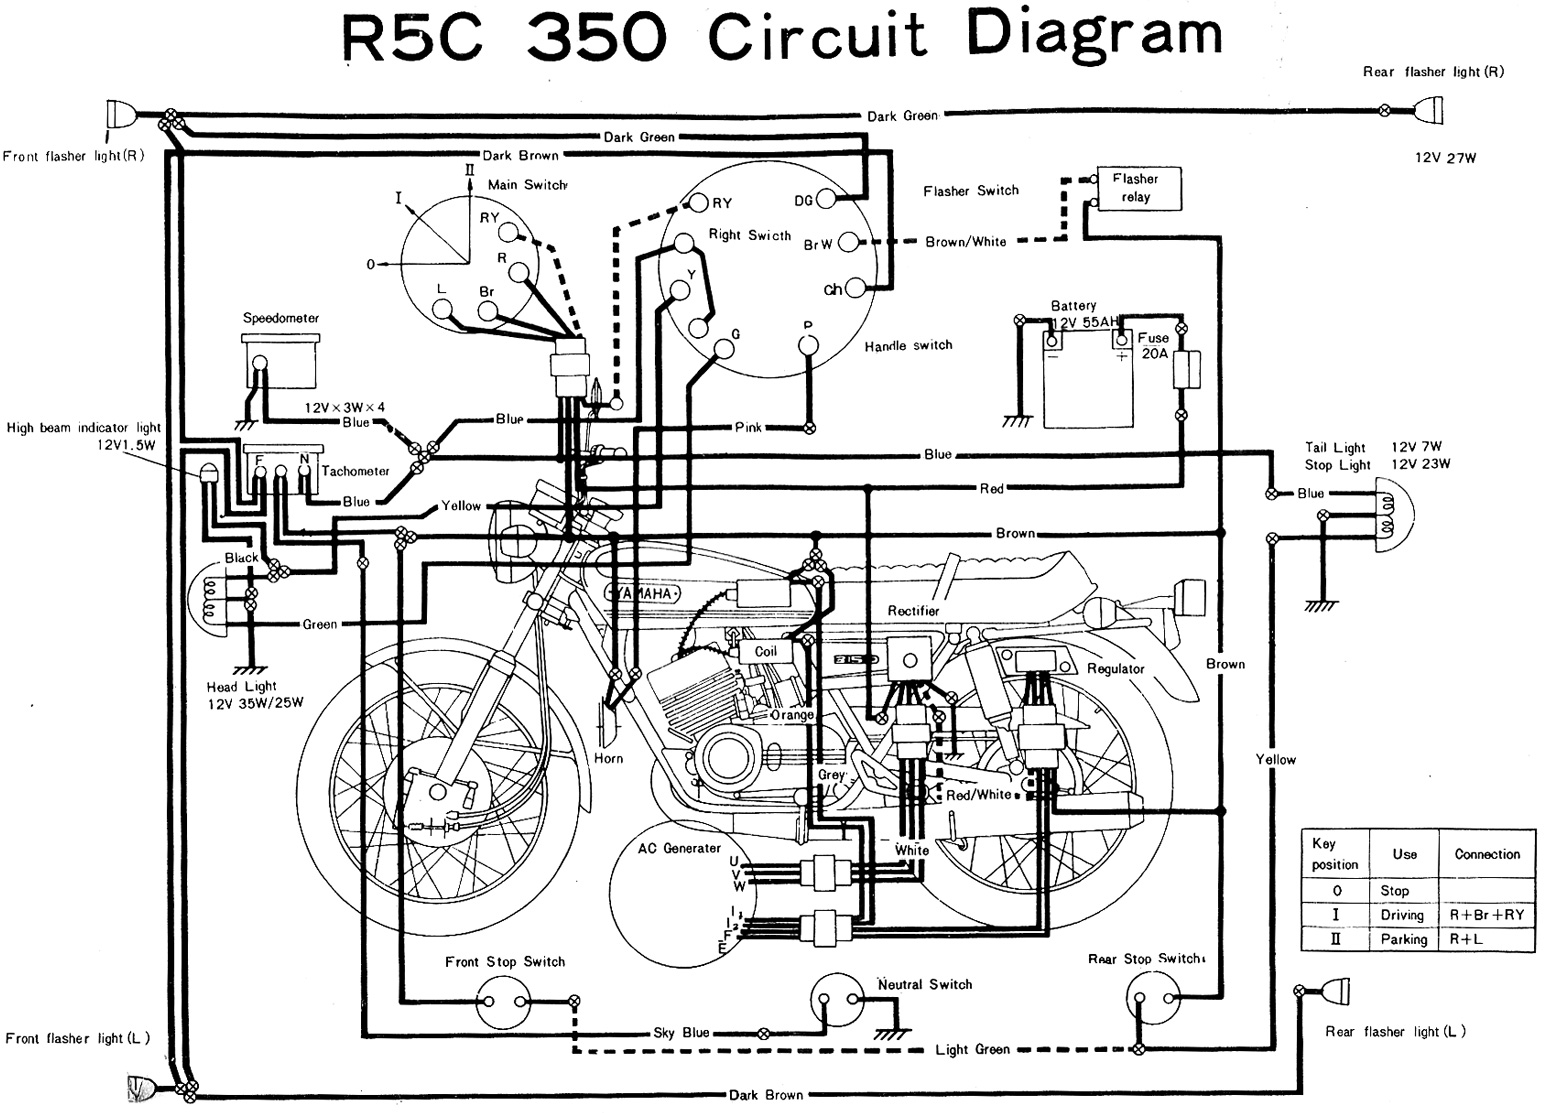 suzuki motorcycle wiring diagrams free wiring diagram Basic Motorcycle Wiring suzuki motorcycle wiring diagrams free wiring diagrammotorcycle wiring diagrams suzuki motorcycle wiring diagrams free